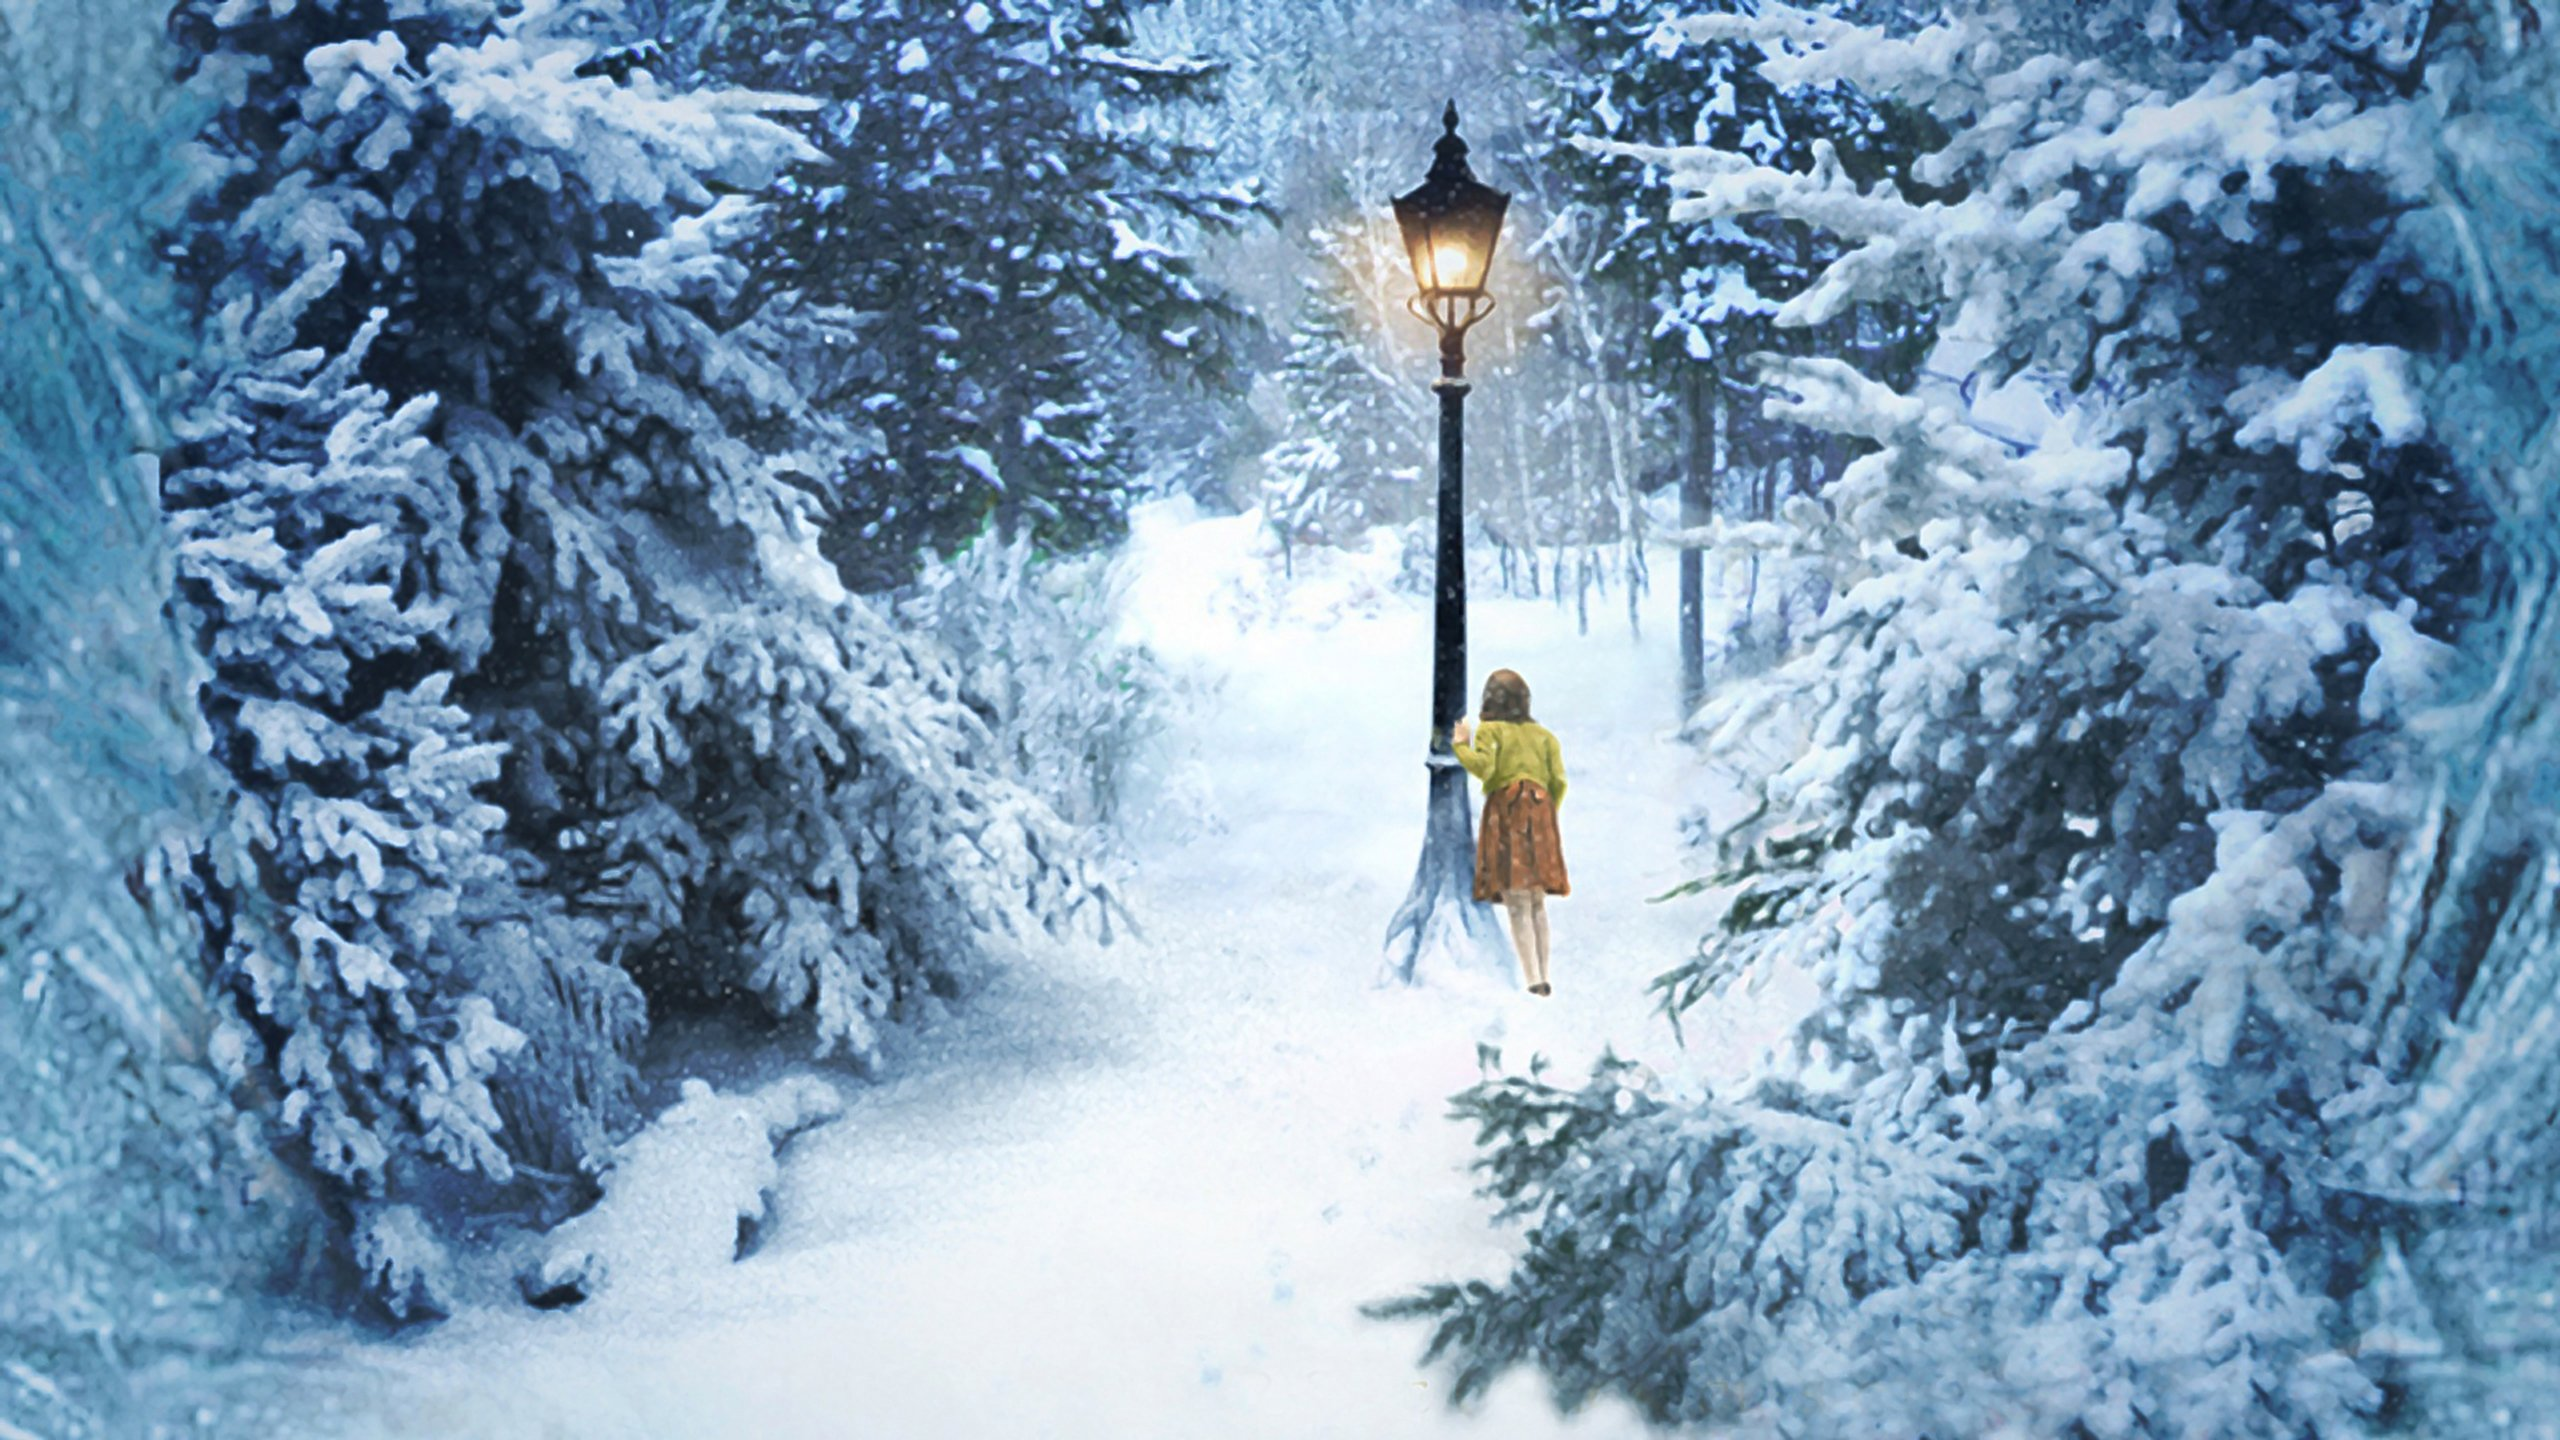 Lucy In Narnia Wallpaper 2560x1440 395439 Wallpaperup